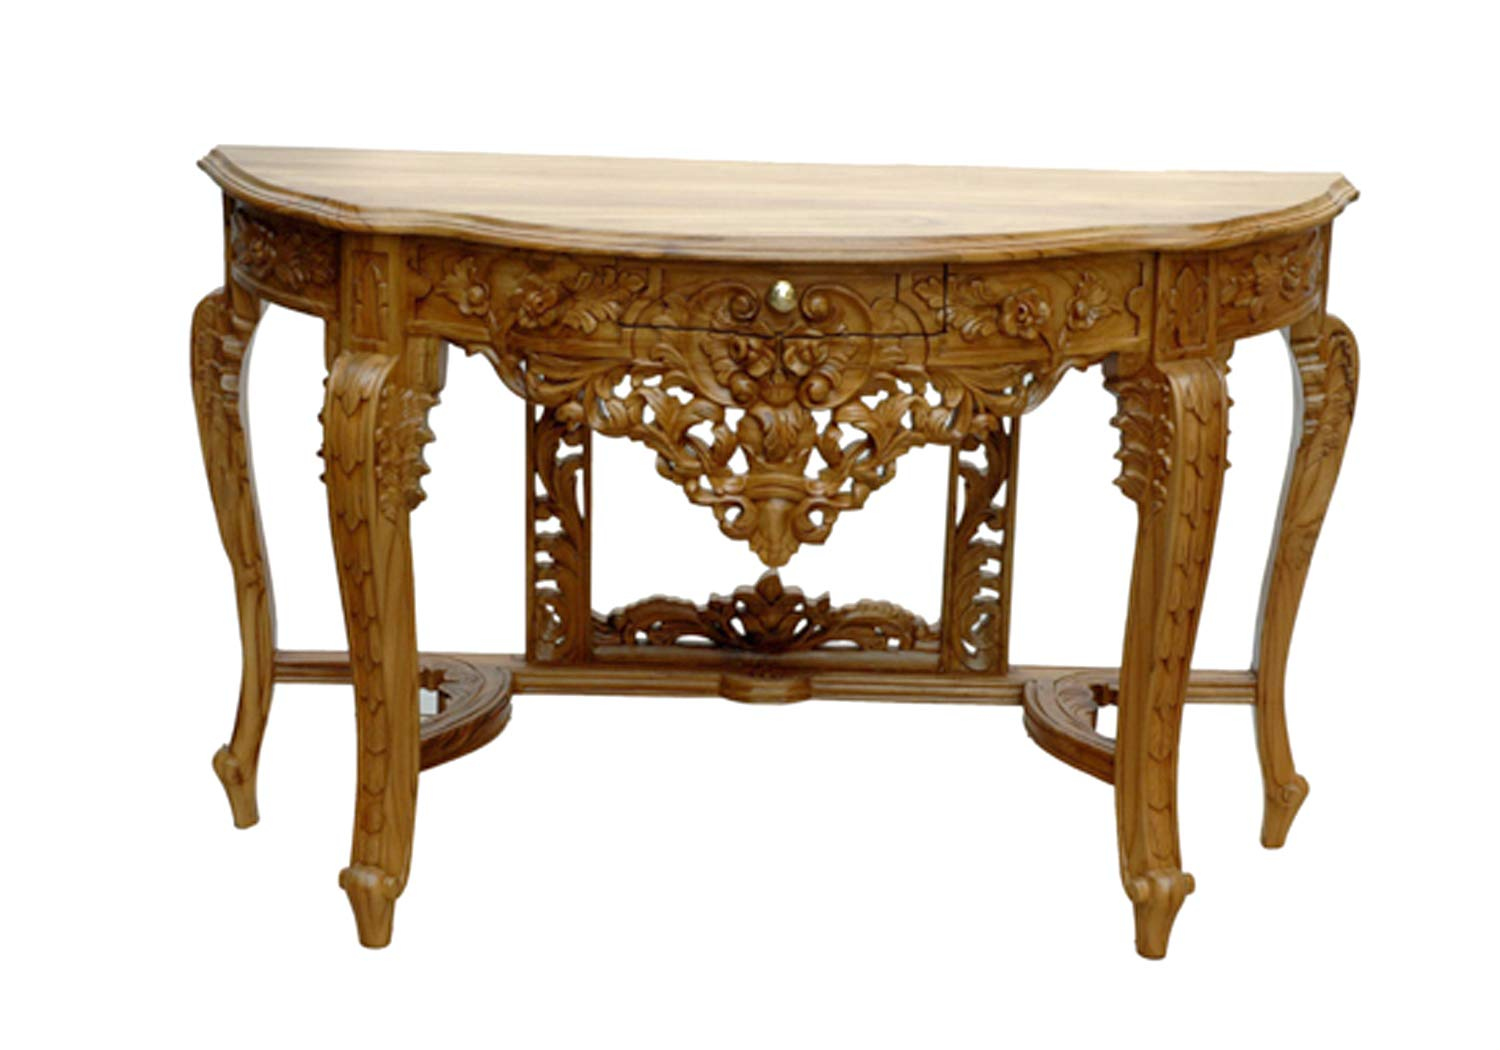 Rintes console table antique, console table decoration, console tables for living room